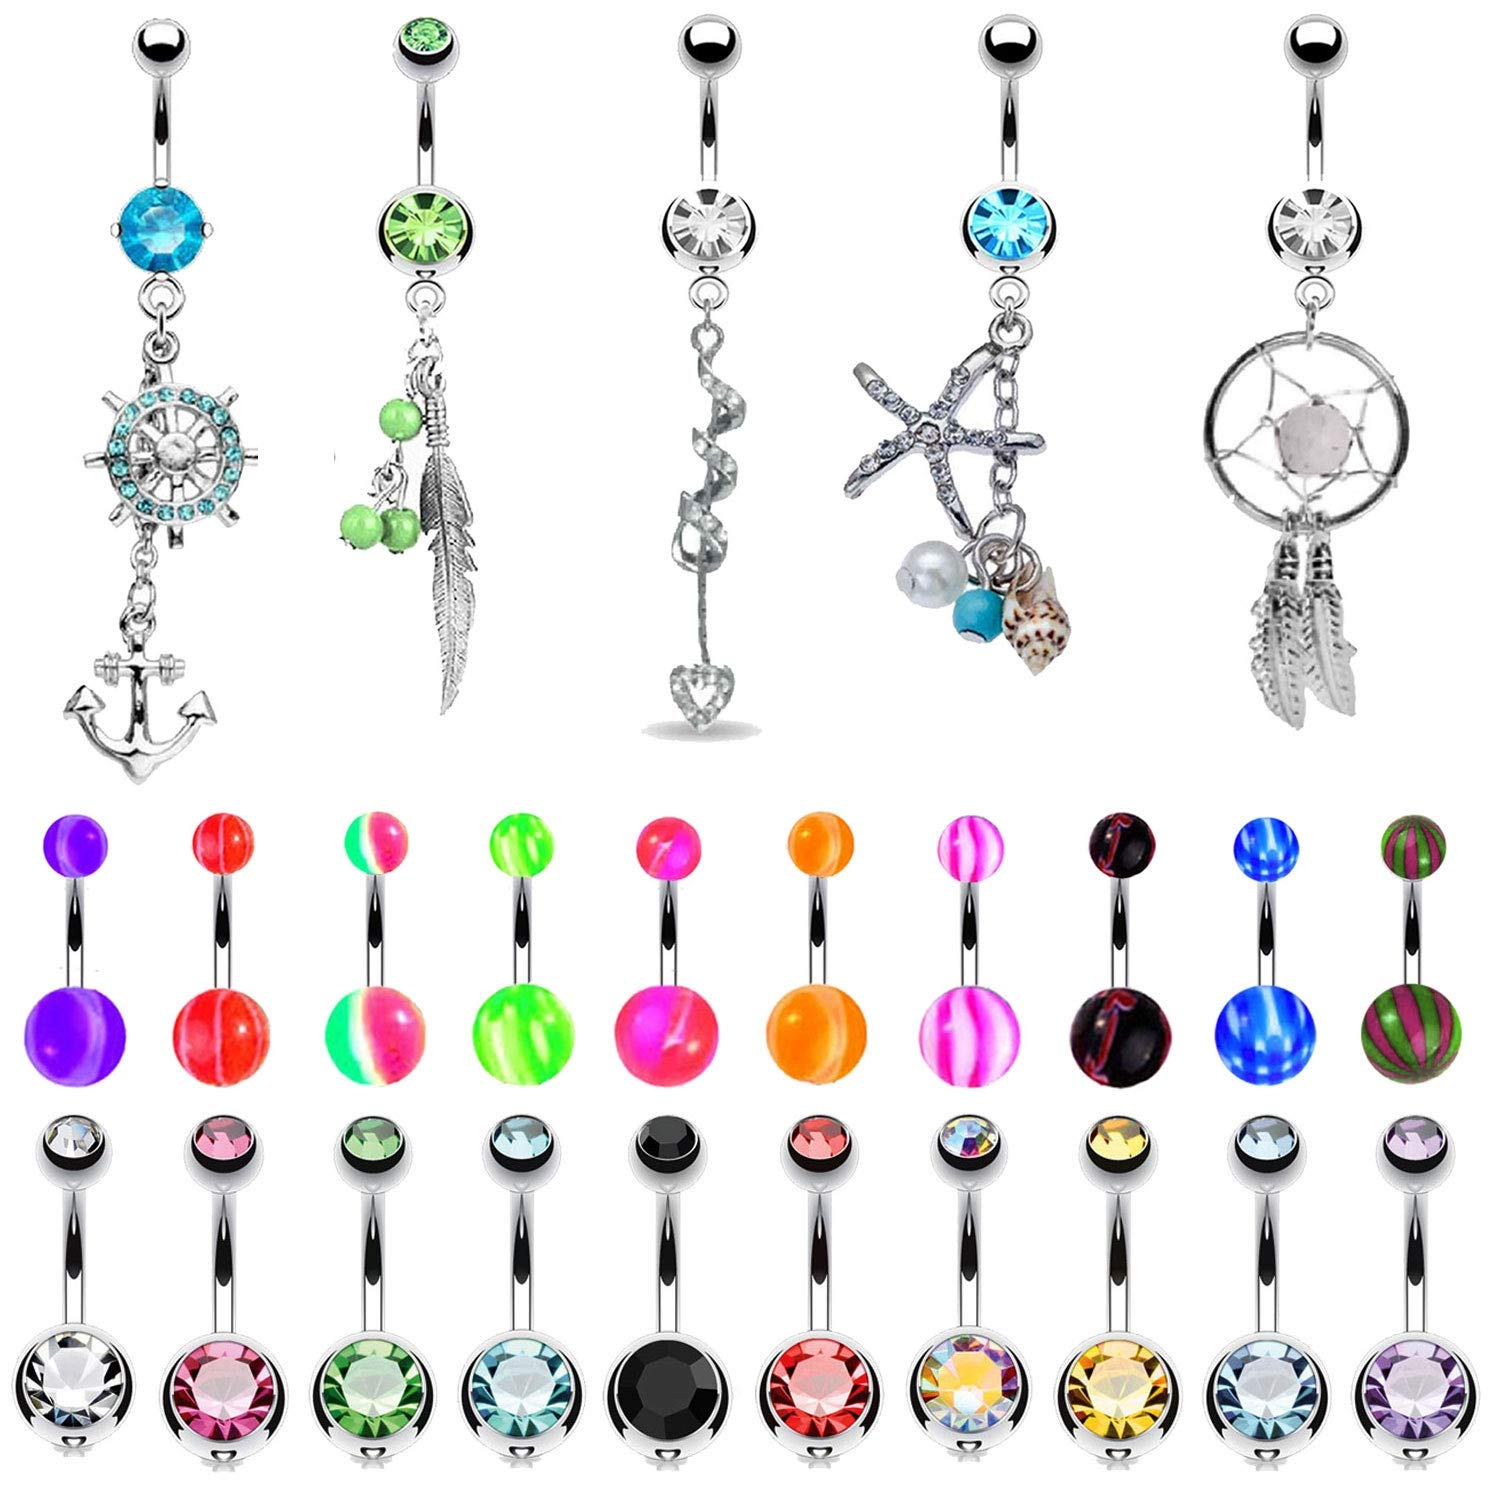 BodyJ4You 65 Belly Button Rings Dangle Barbells 14G Acrylic Stainless Steel CZ Navel Body Jewelry by BodyJ4You